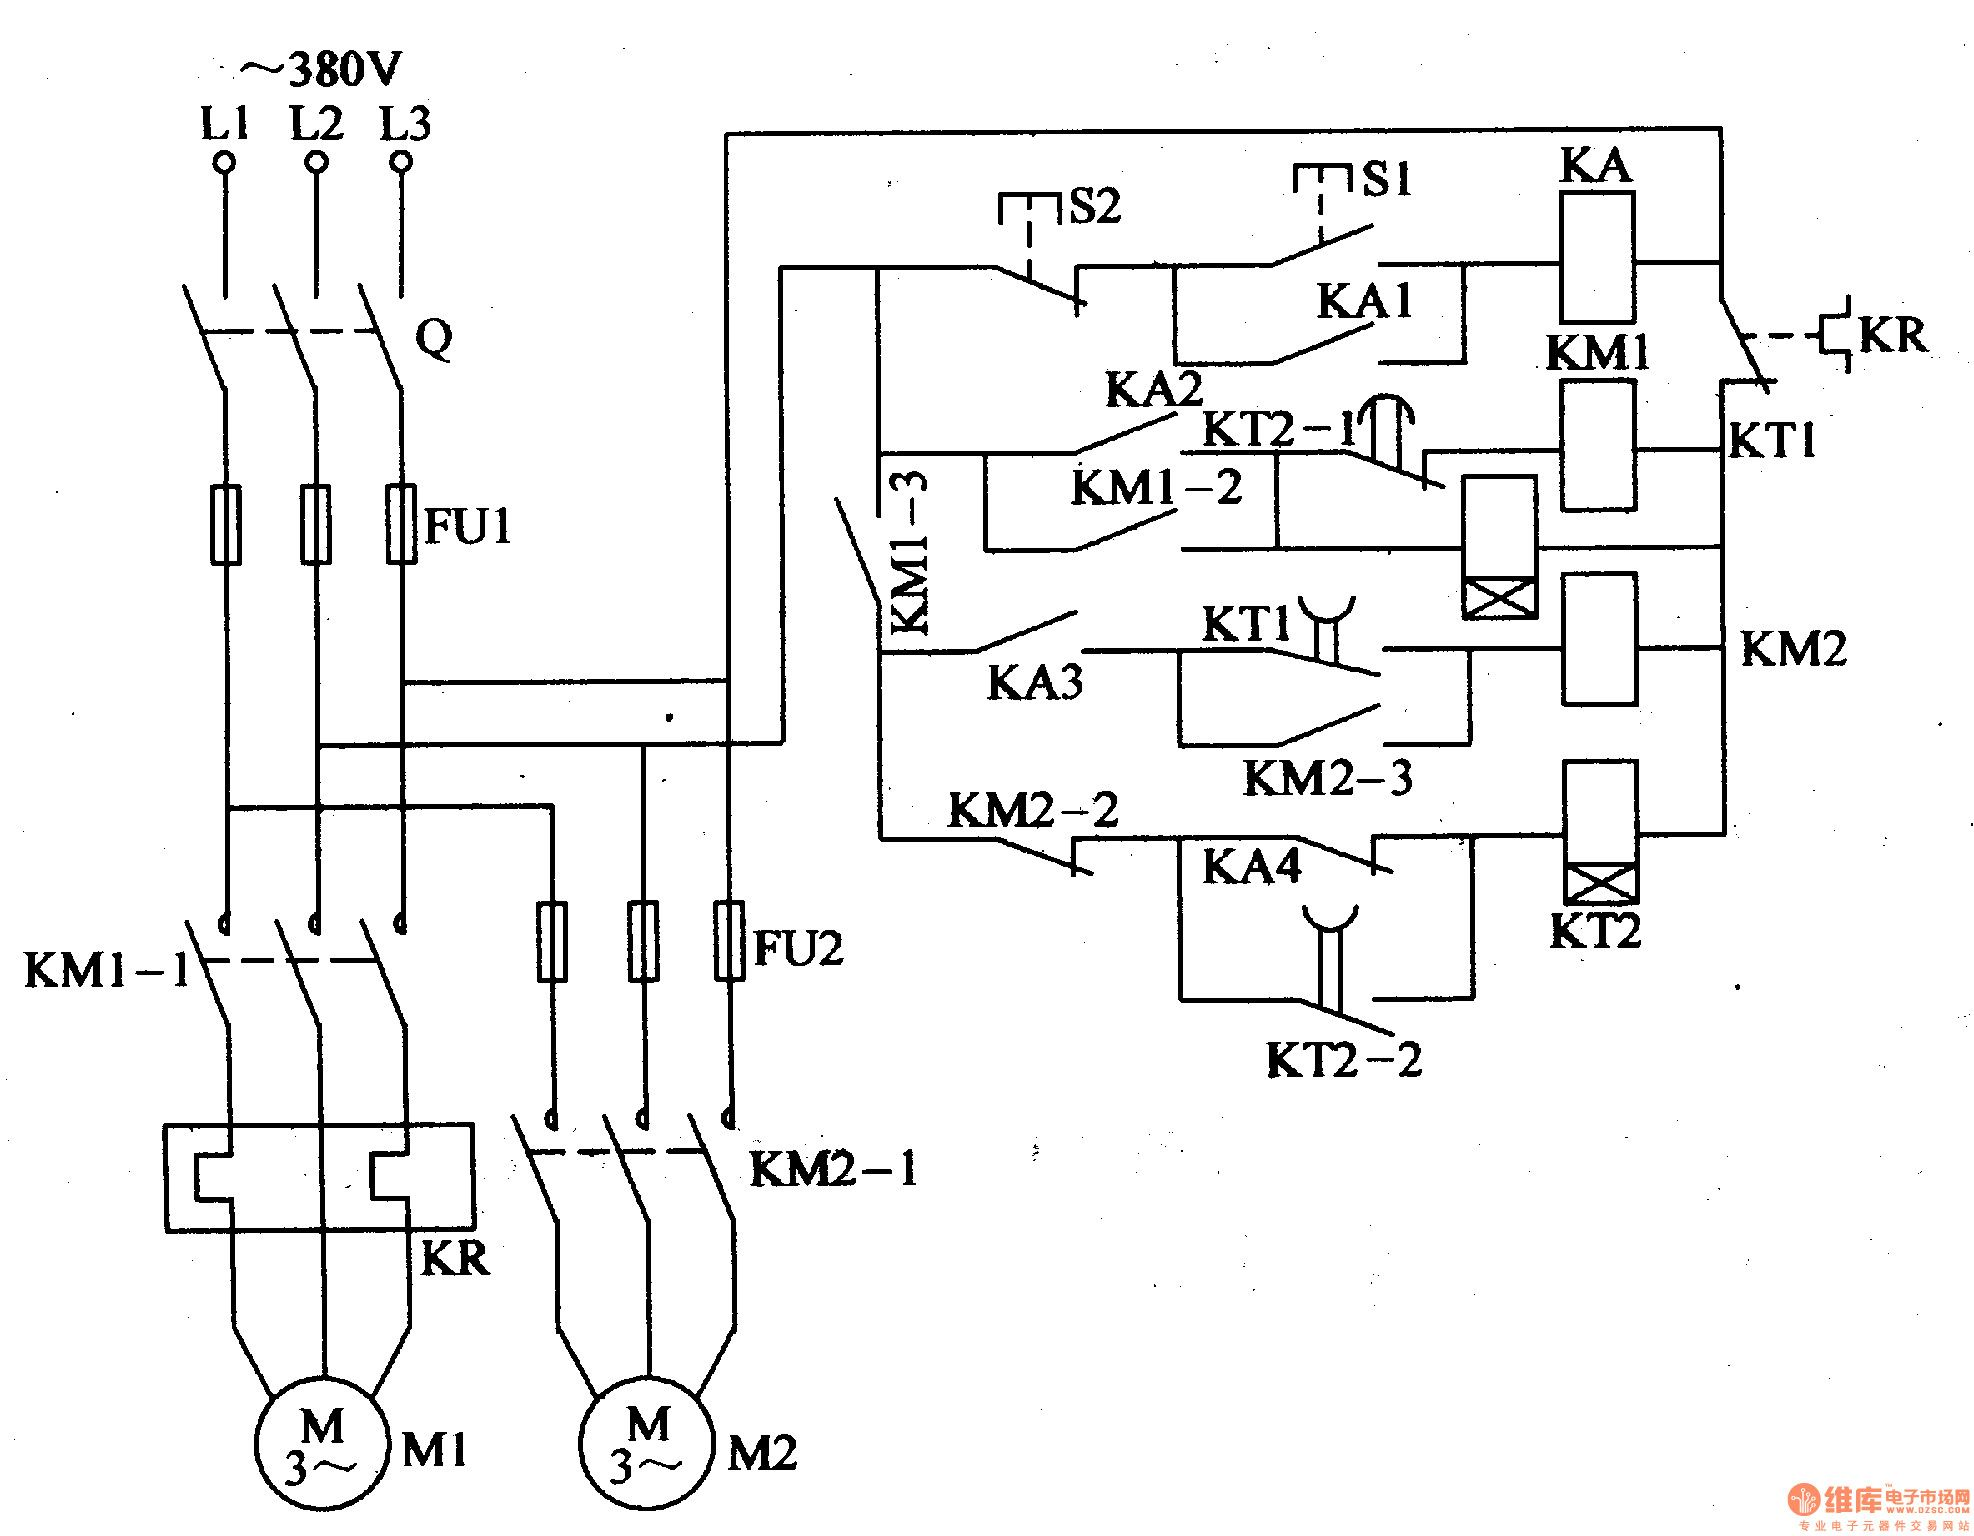 small resolution of square d panelboard wiring diagram wiring diagrams trigg square d panelboard wiring diagram